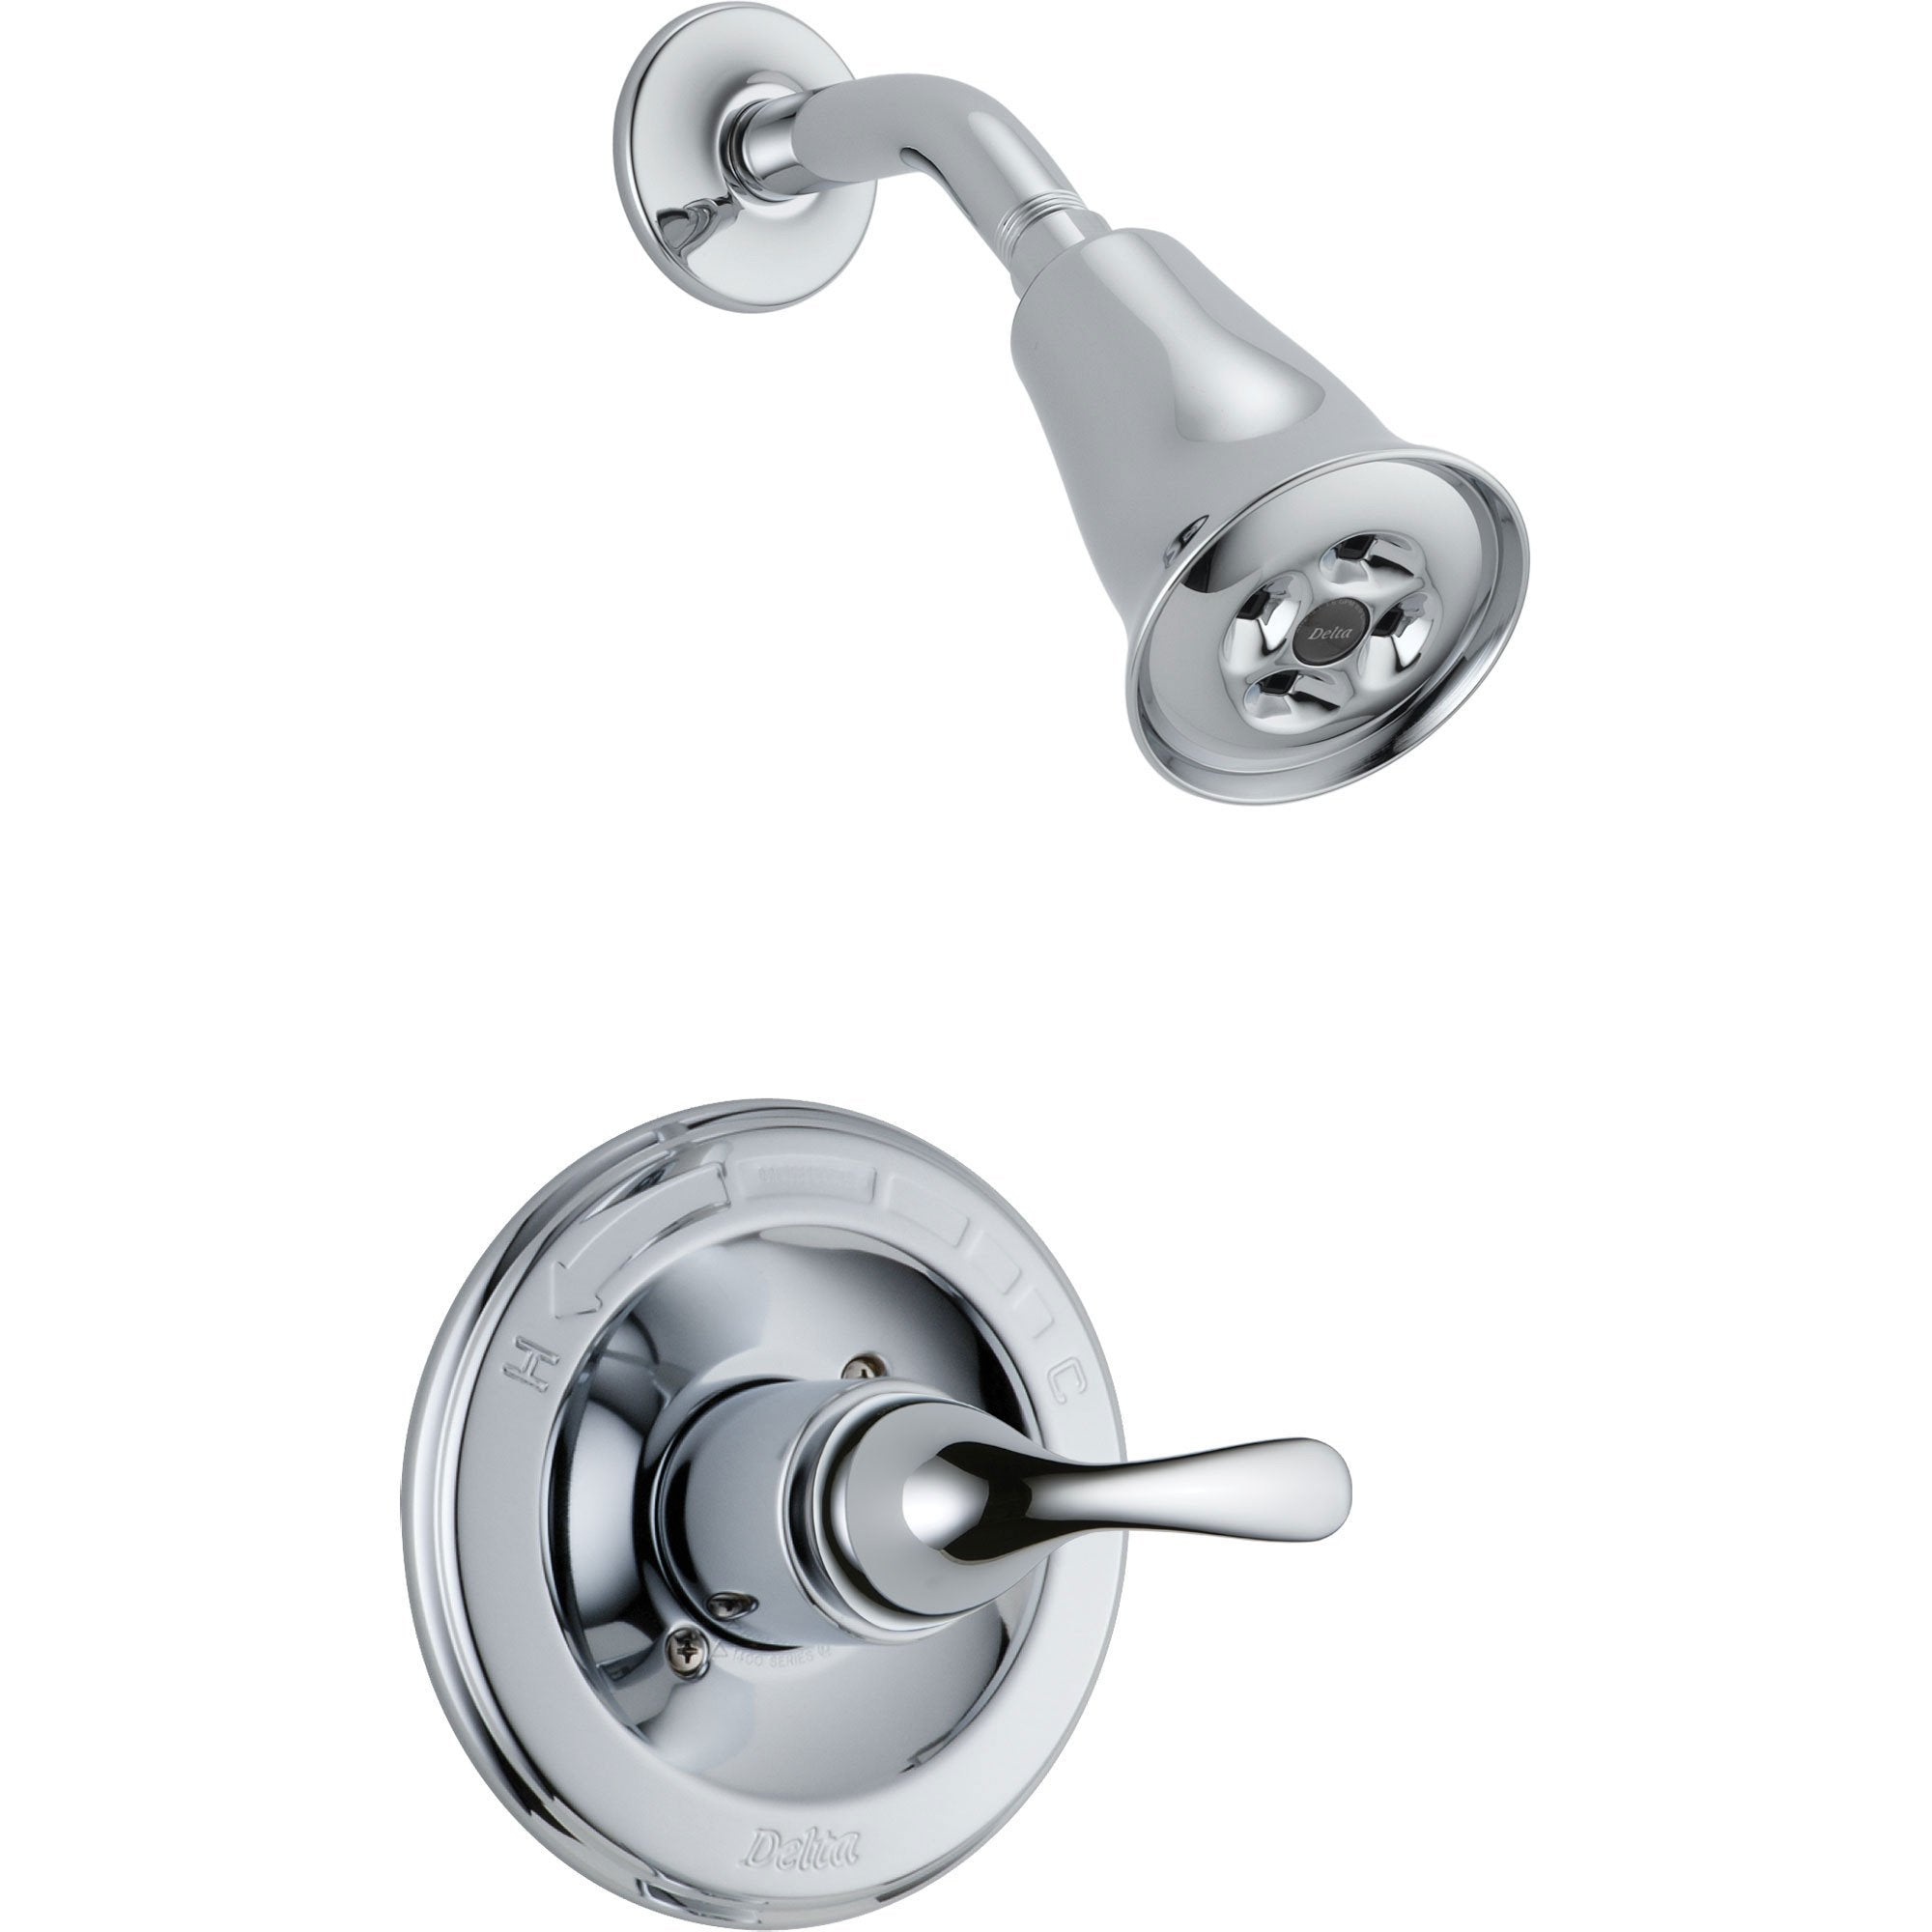 Delta Classic Chrome Single Handle Shower Only Faucet Includes Valve D615V